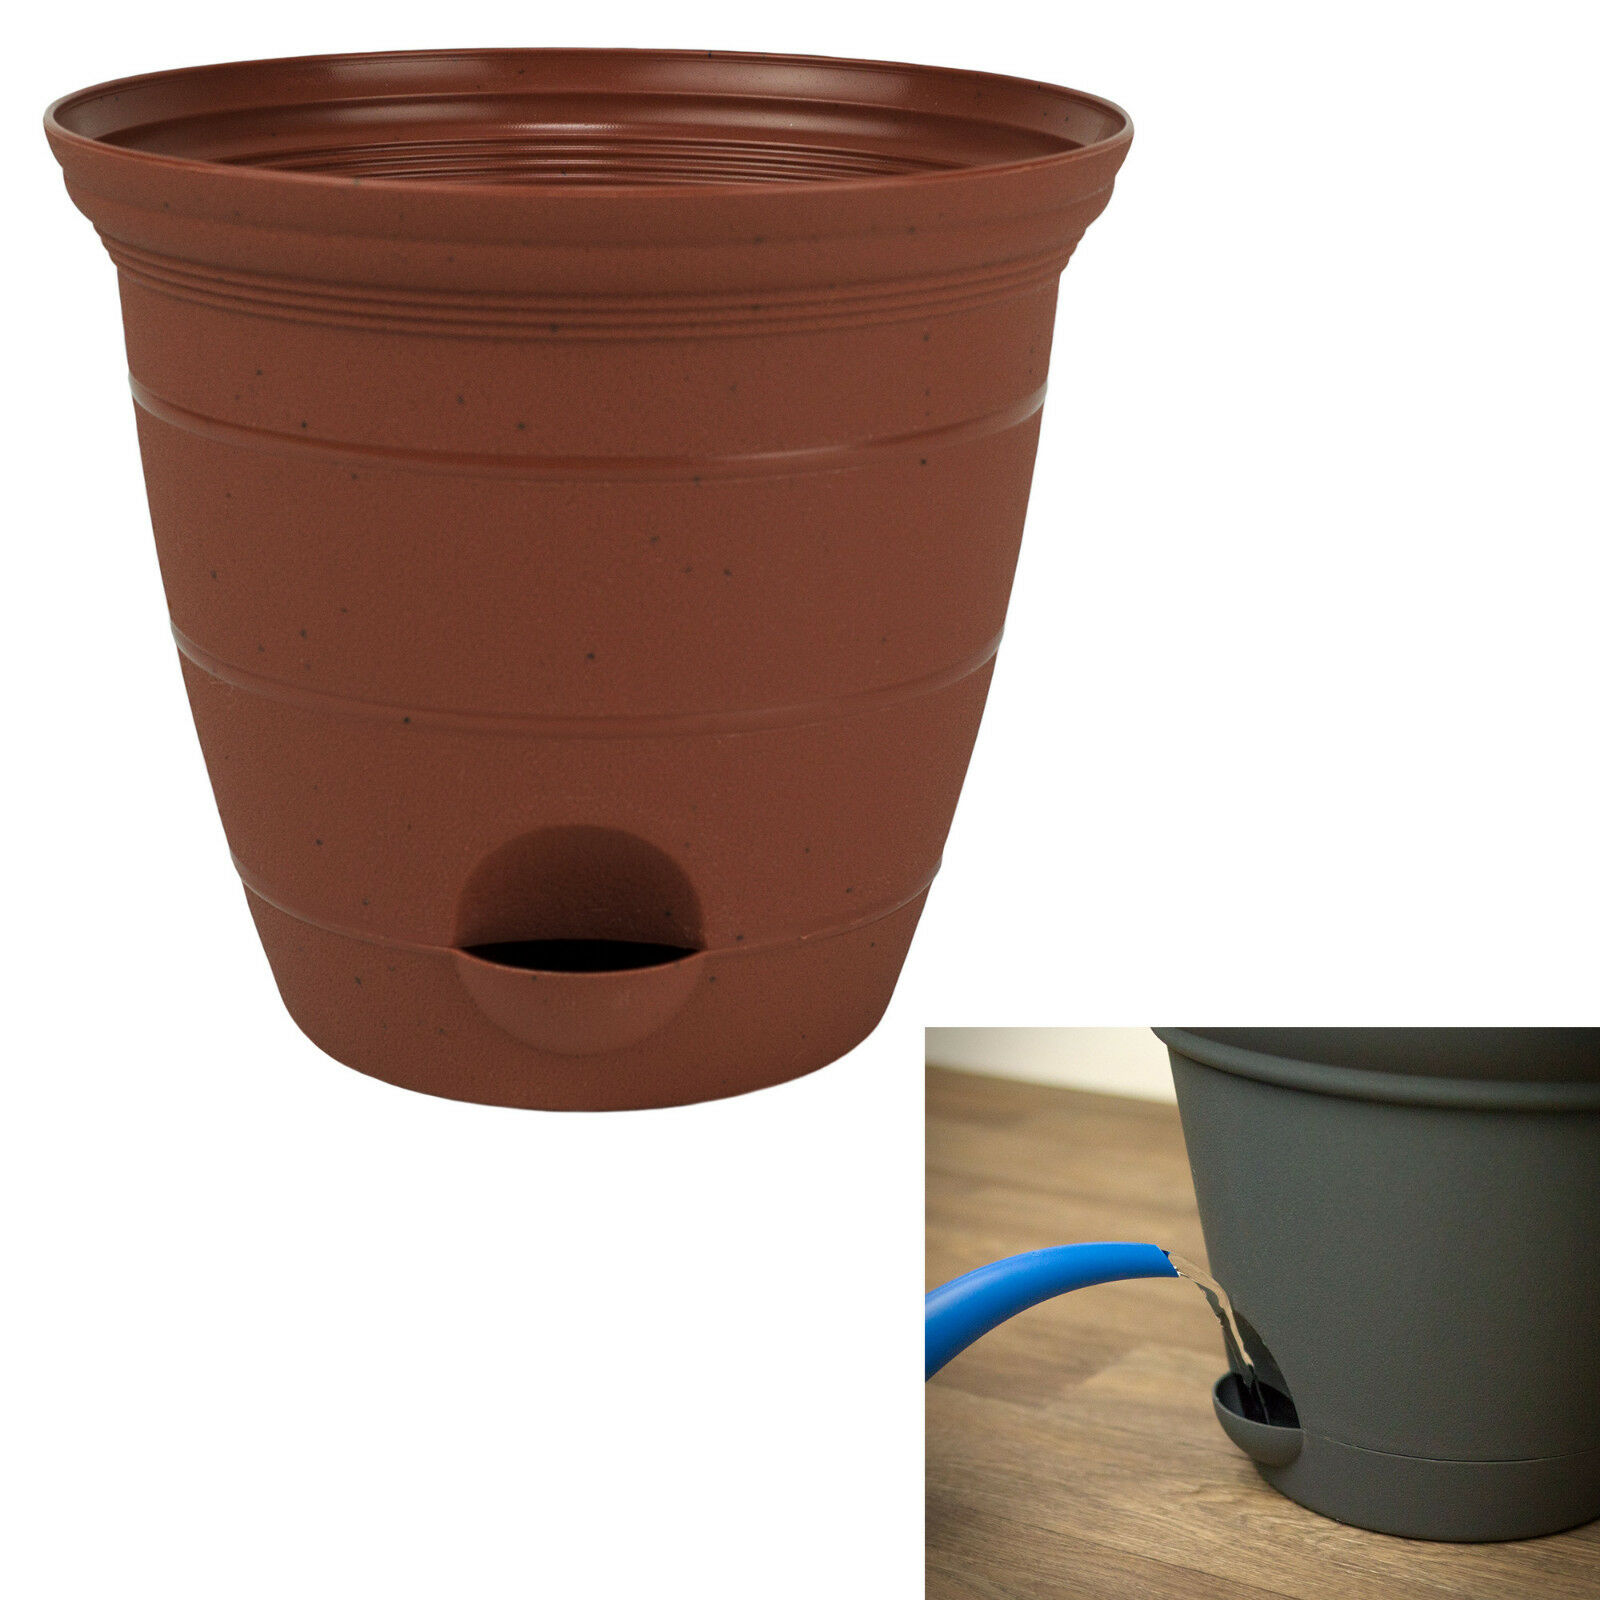 Plastic Self Watering Flower Potted Planter Pot Garden, Clay Color 6, 8, 10, 12